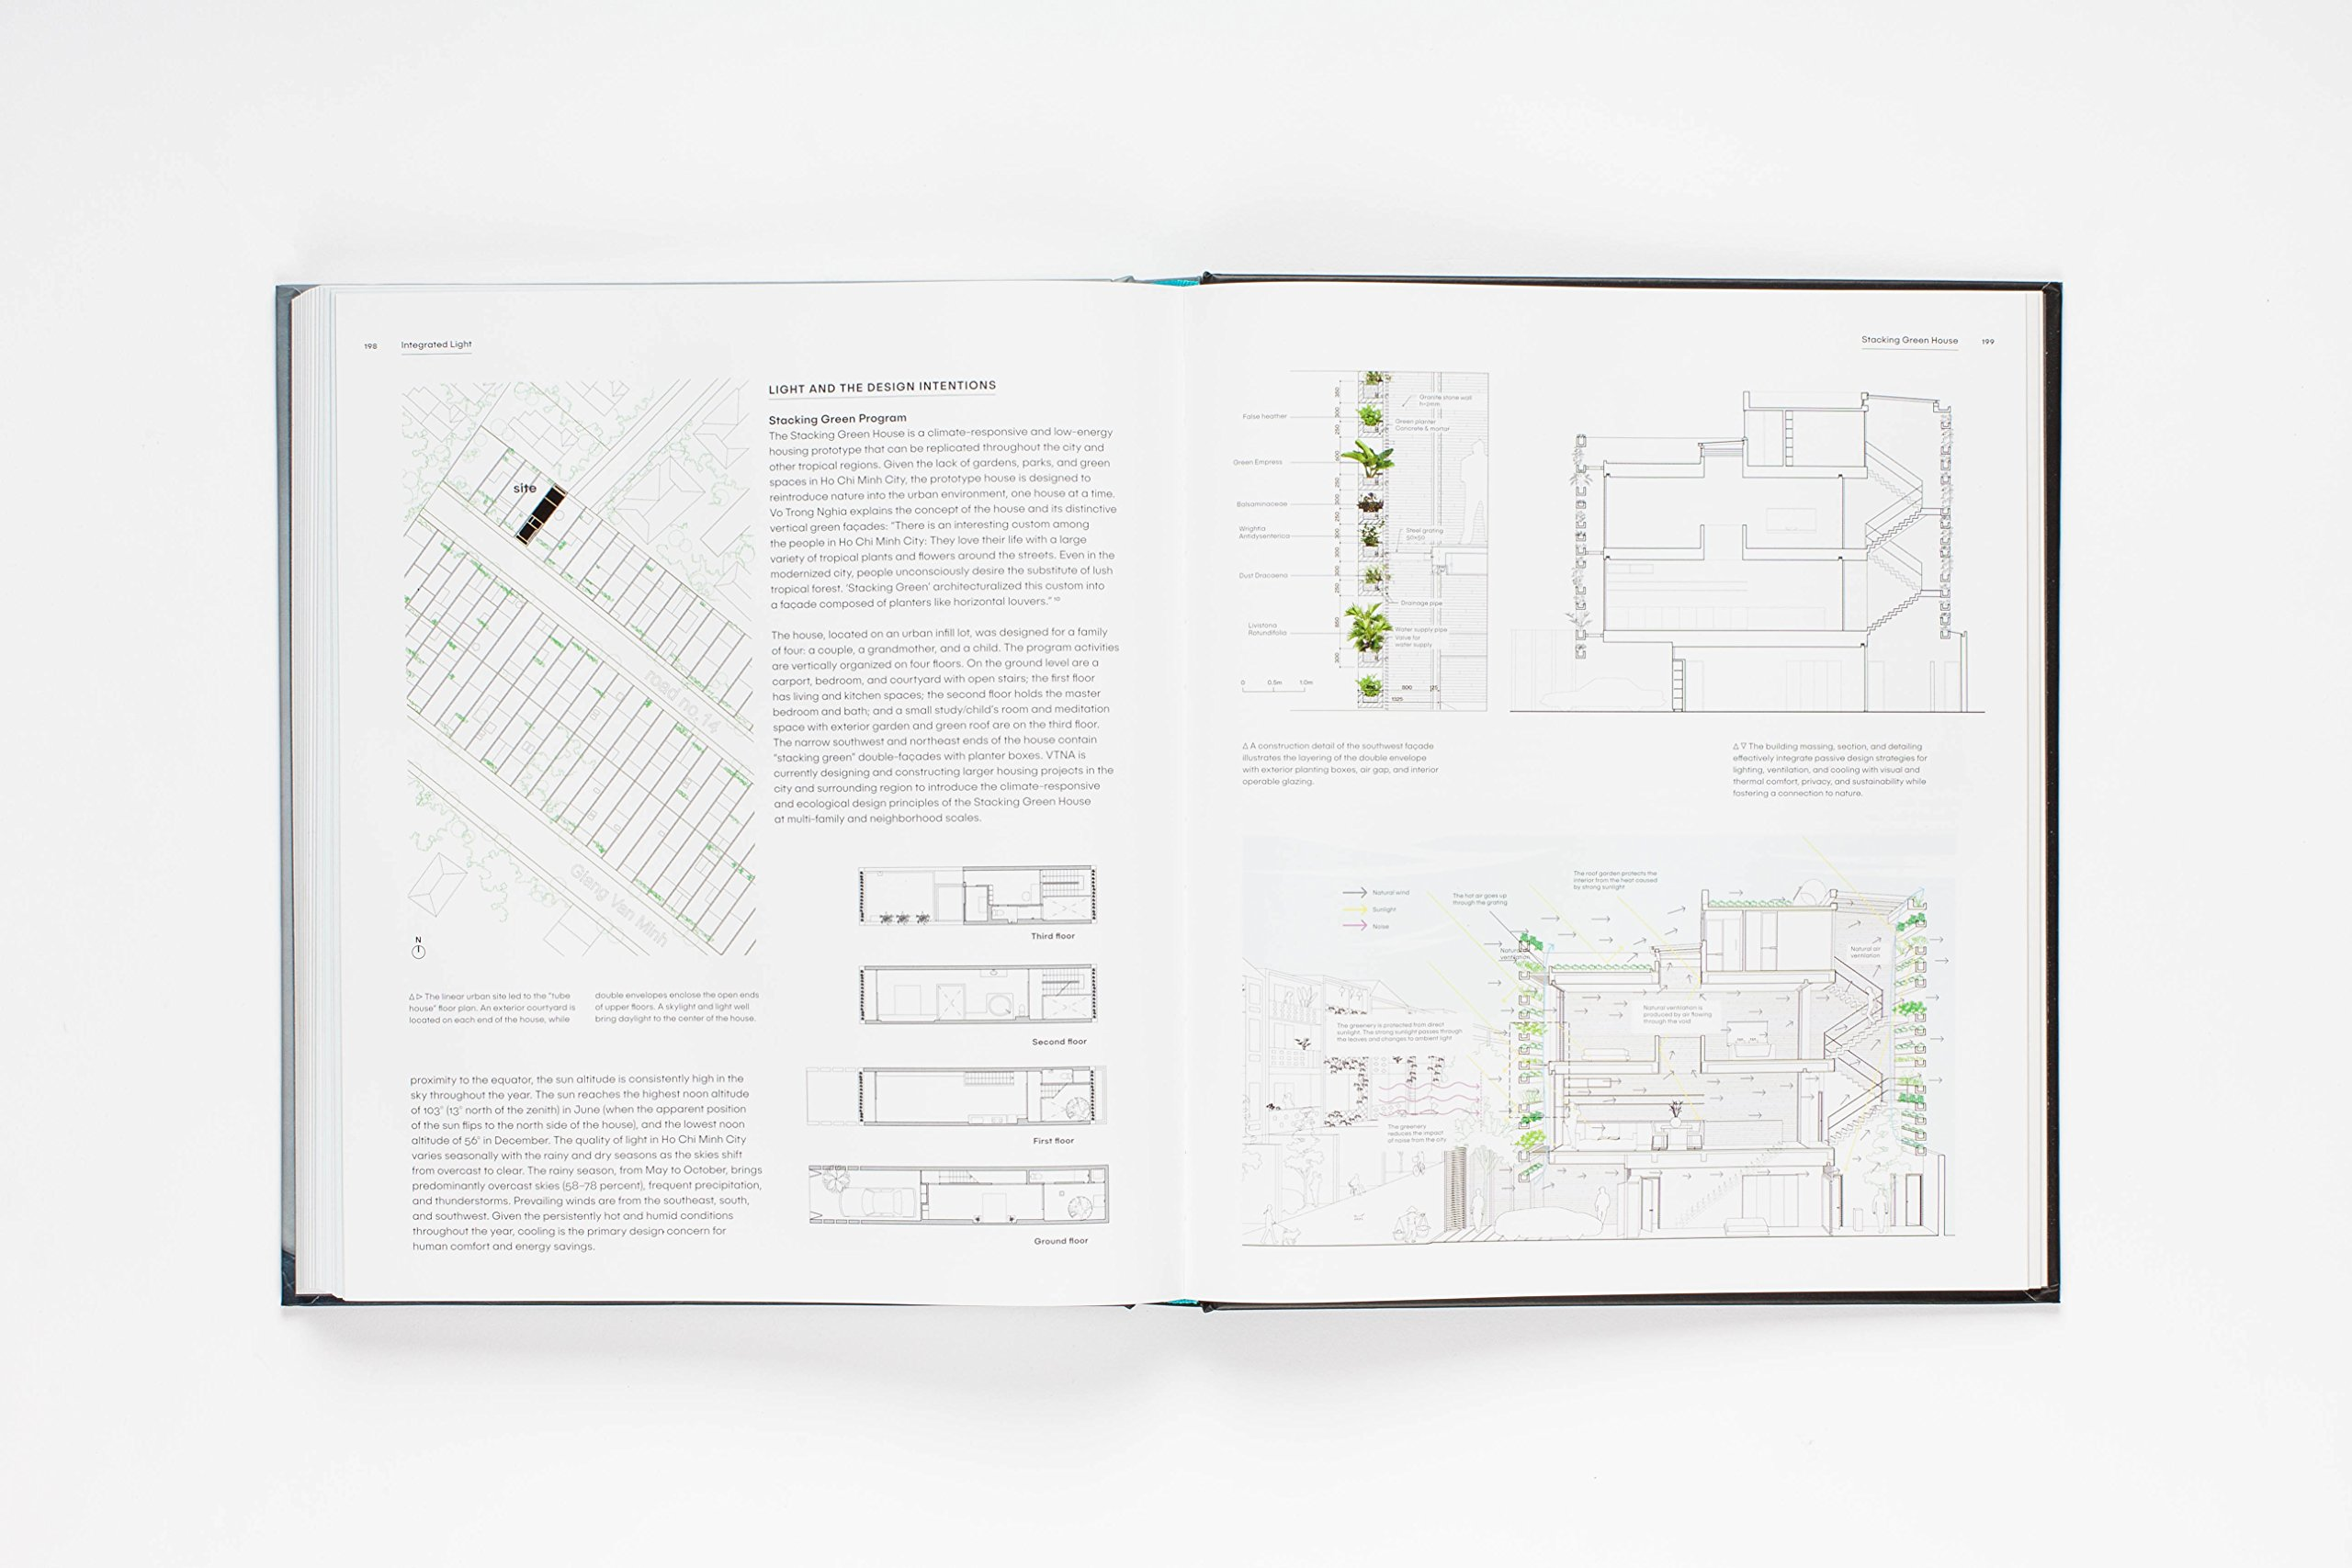 The Art Of Architectural Daylighting Mary Guzokwski Diagram 2 Illustrates A More Complex Home Theater Configuration Books